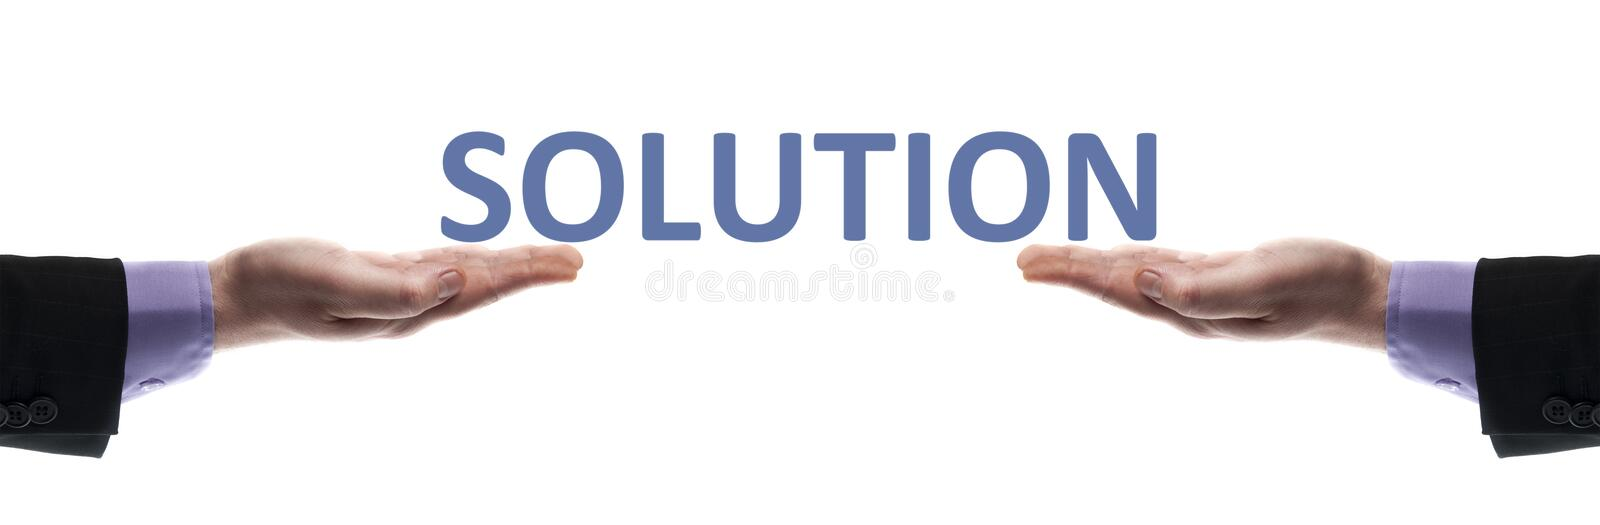 Download Solution message stock image. Image of holding, formal - 22546533